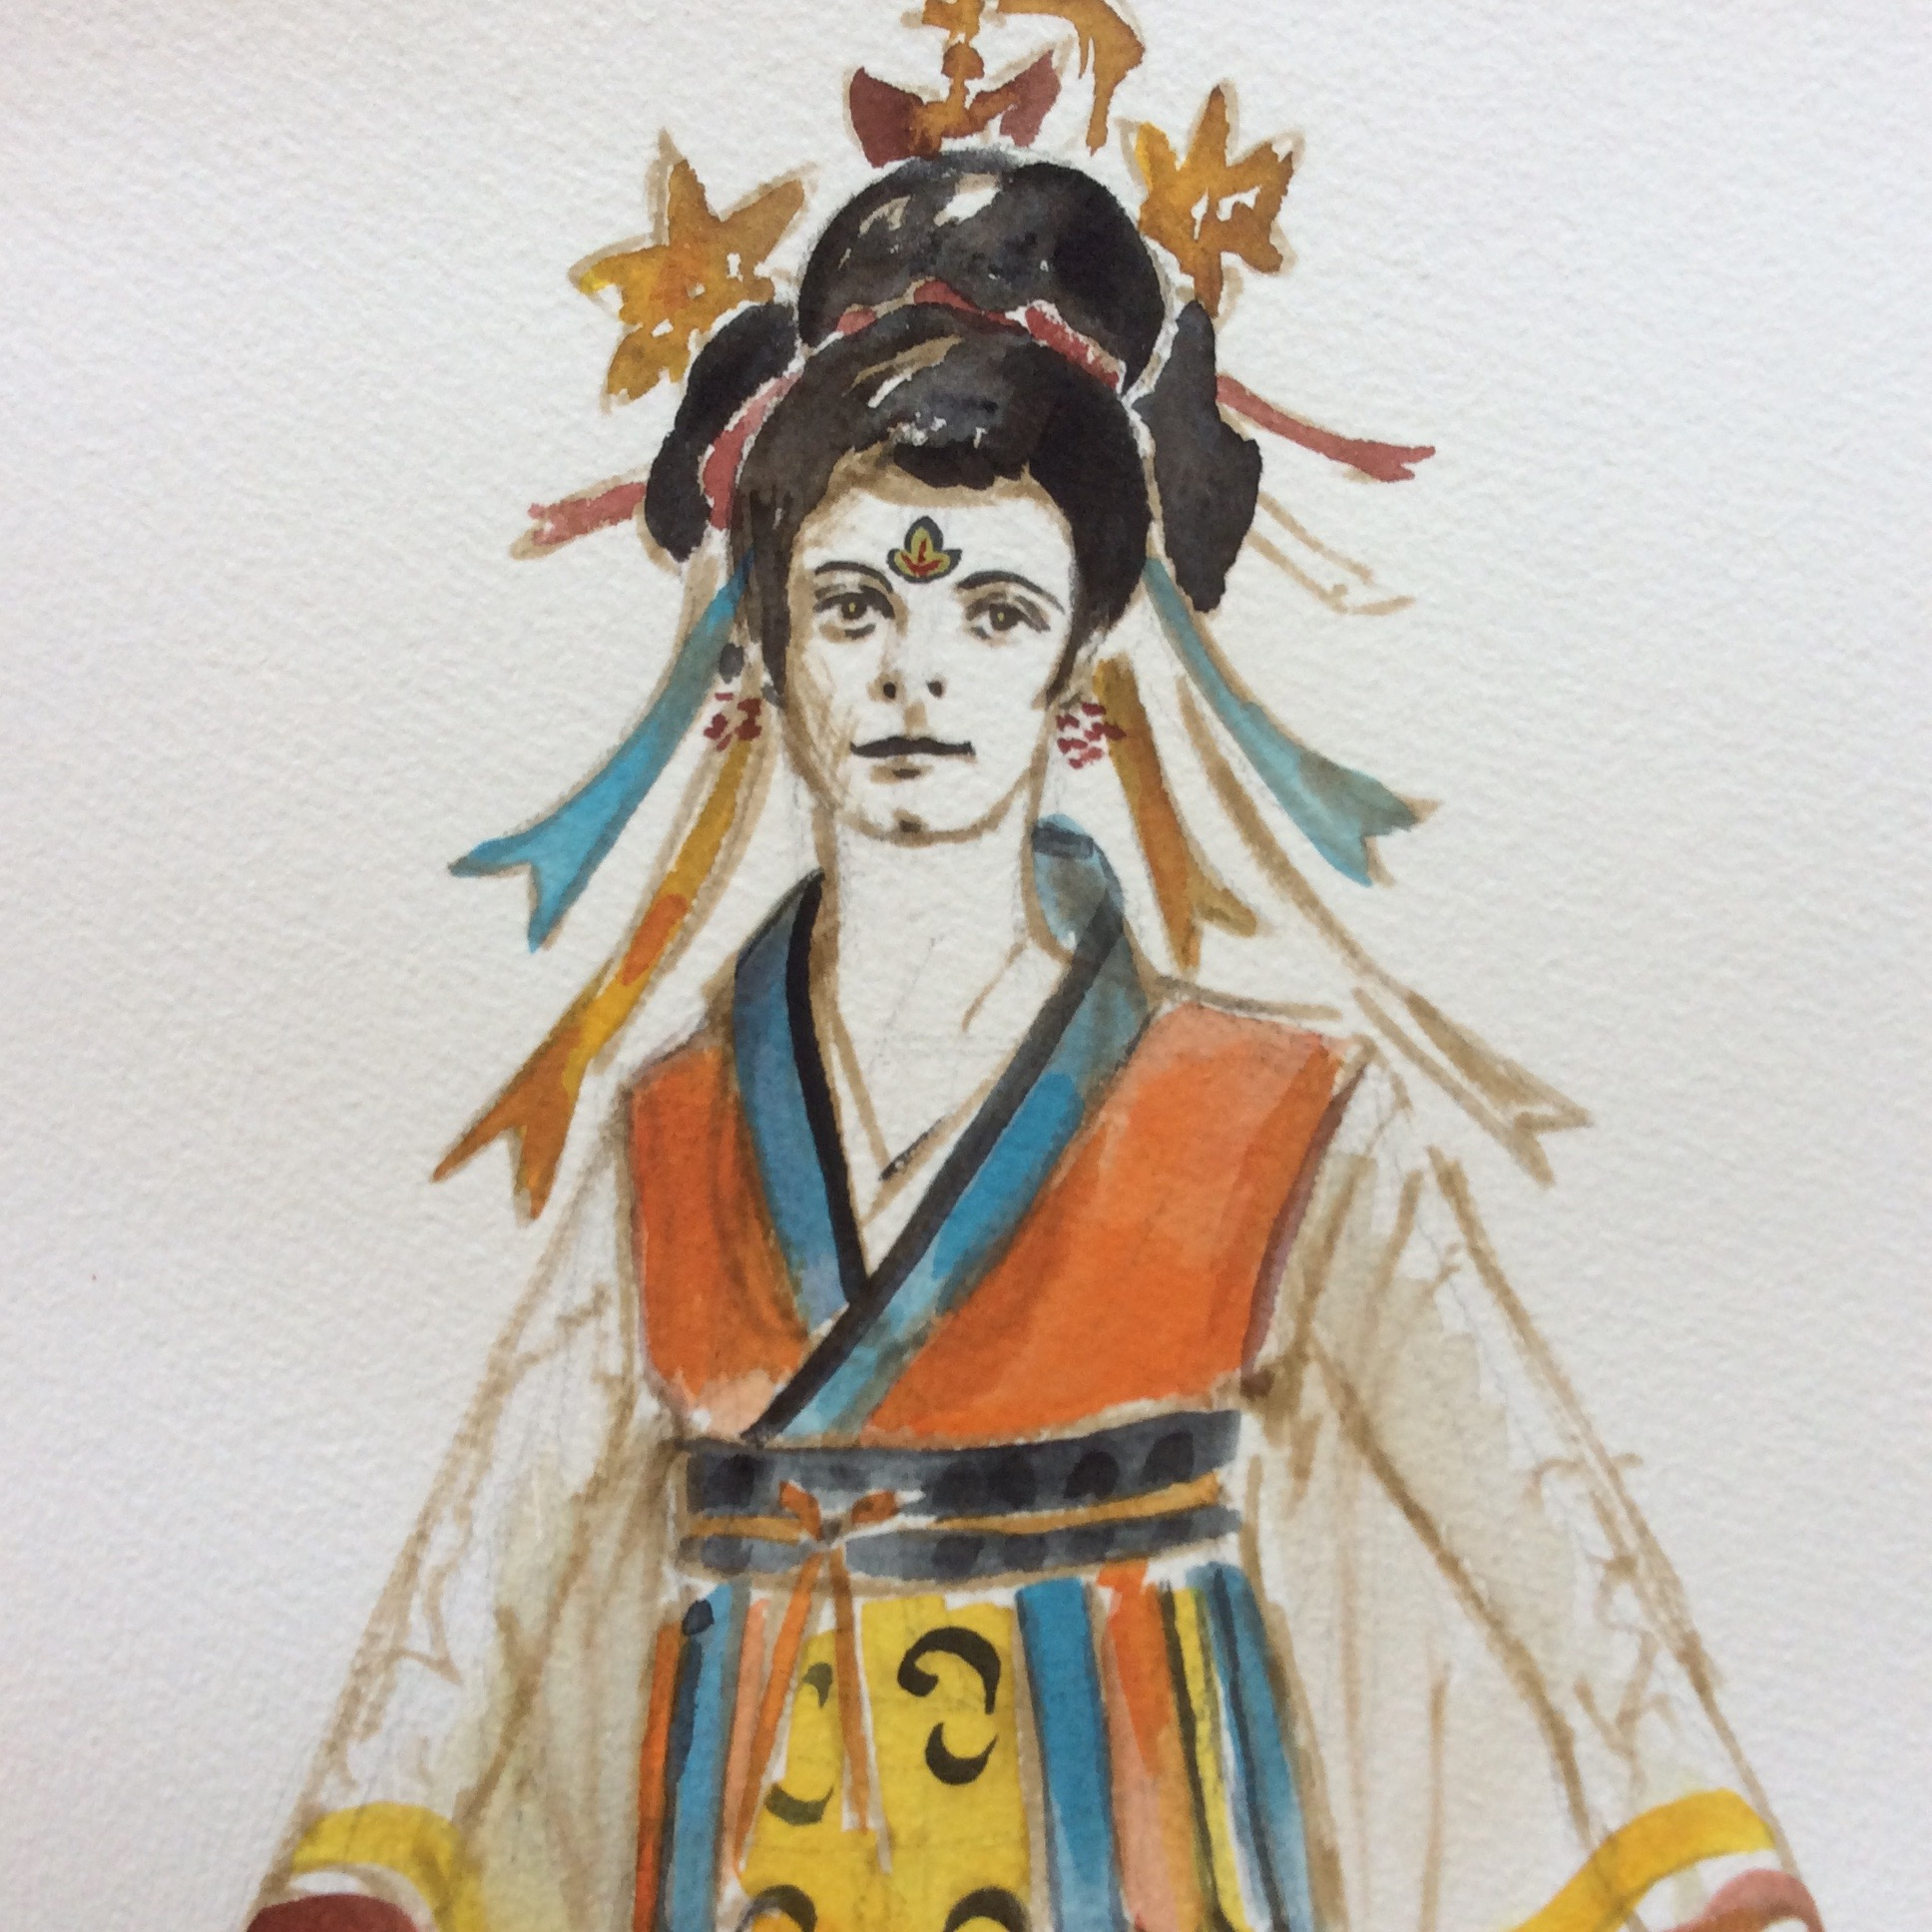 Turandot - PUCCINImaquette for a handmaid (detail)watercolor2003